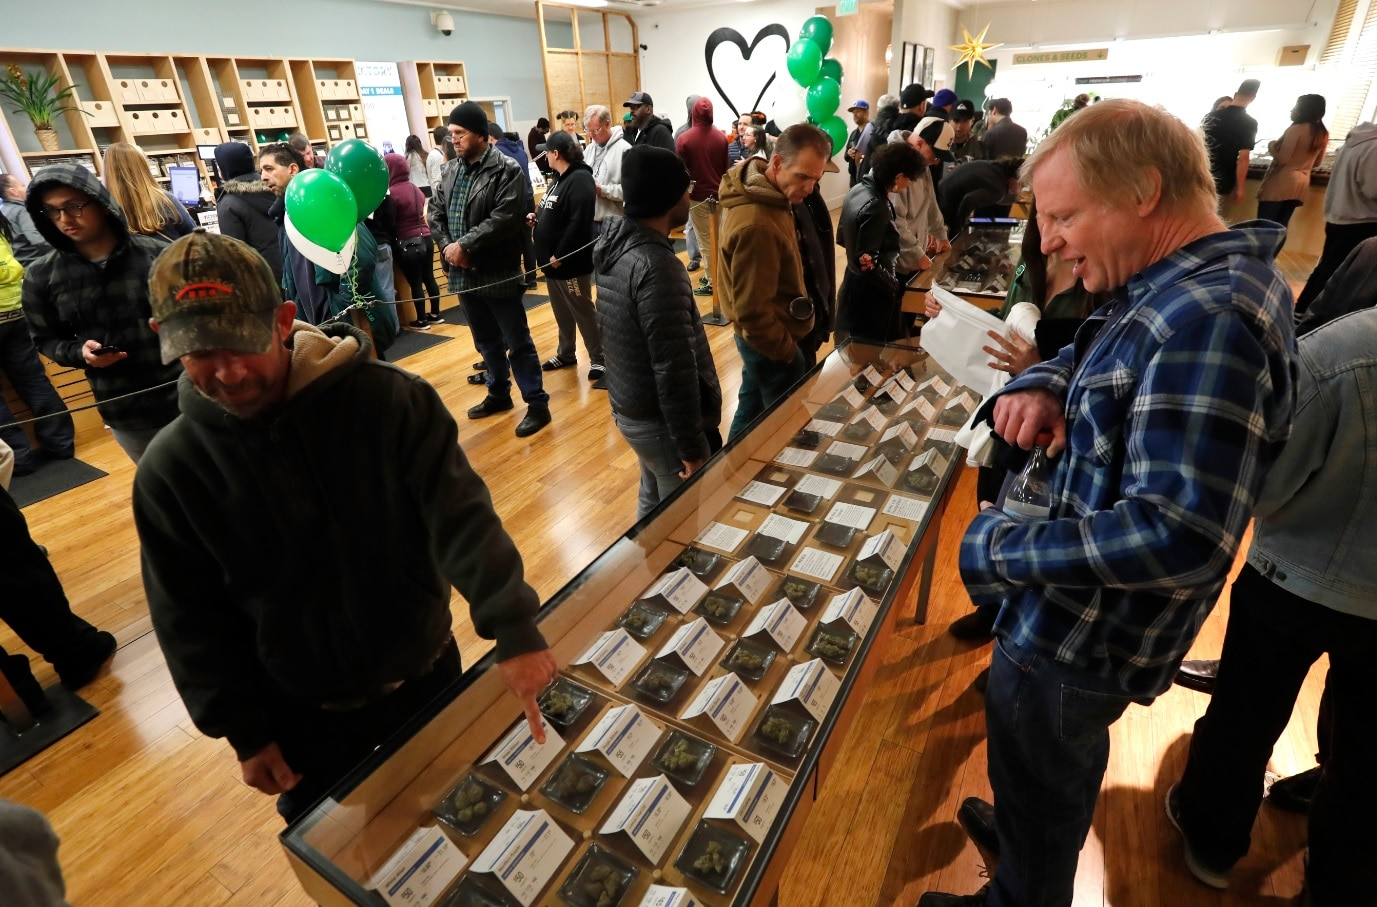 Customers check out cannabis samples on display while waiting in line at the Harborside cannabis dispensary in Oakland, California, USA (AAP)